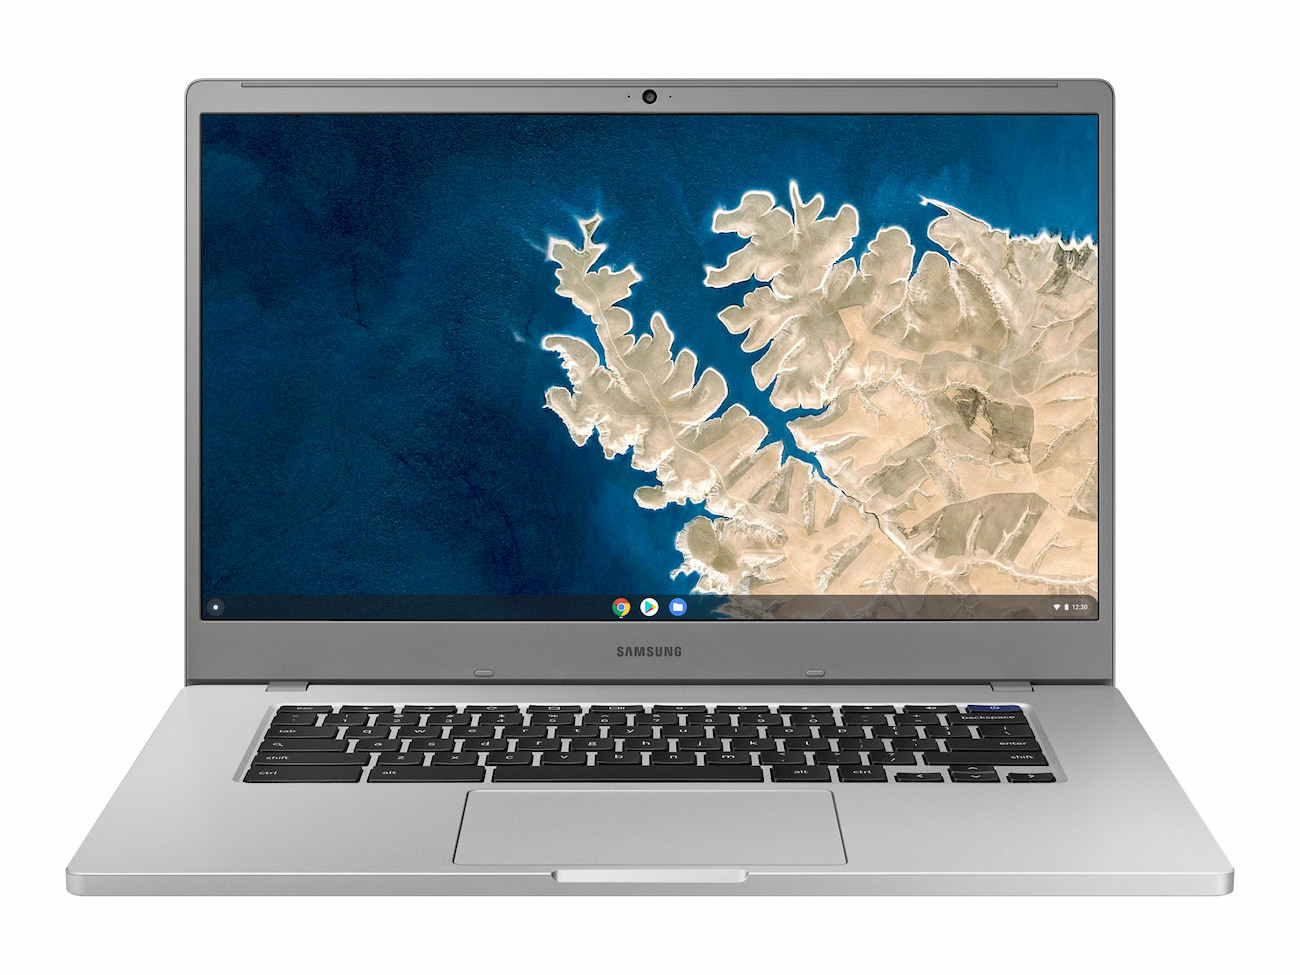 Deal Alert: Pick up this 15.6″ Samsung Chromebook 4+ for $270